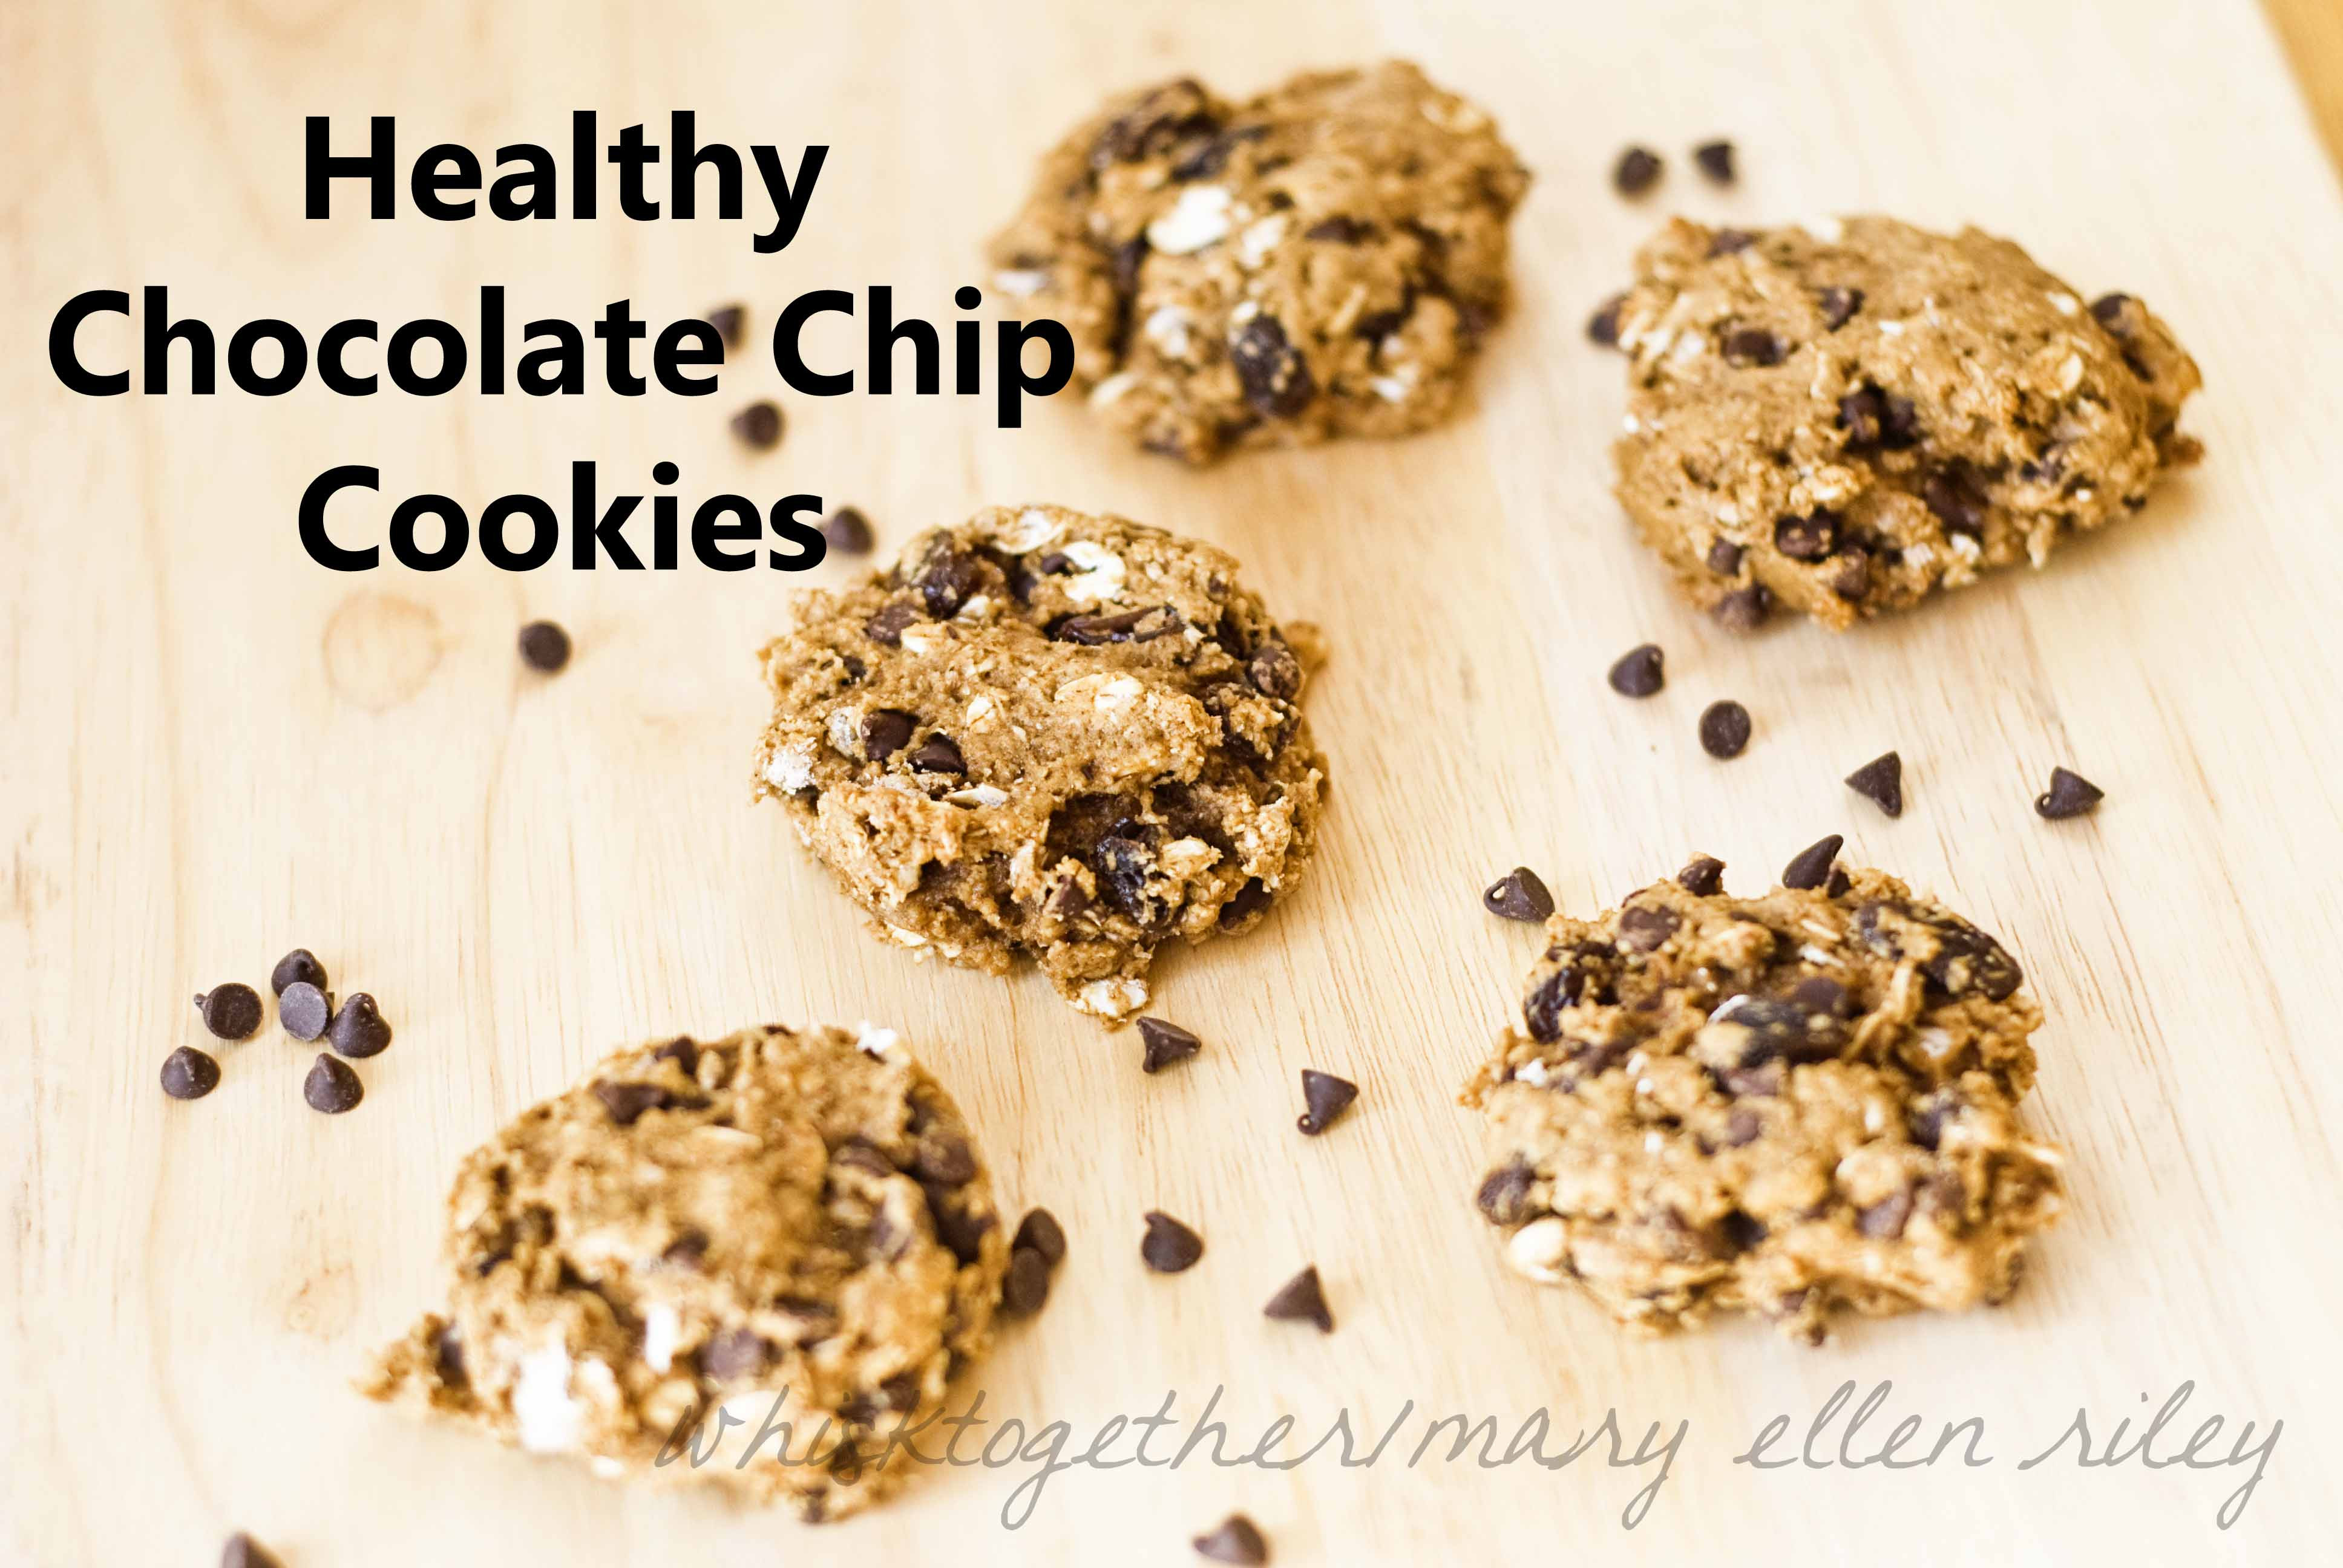 Are Chocolate Chip Cookies Healthy  Healthy Chocolate Chip Cookies